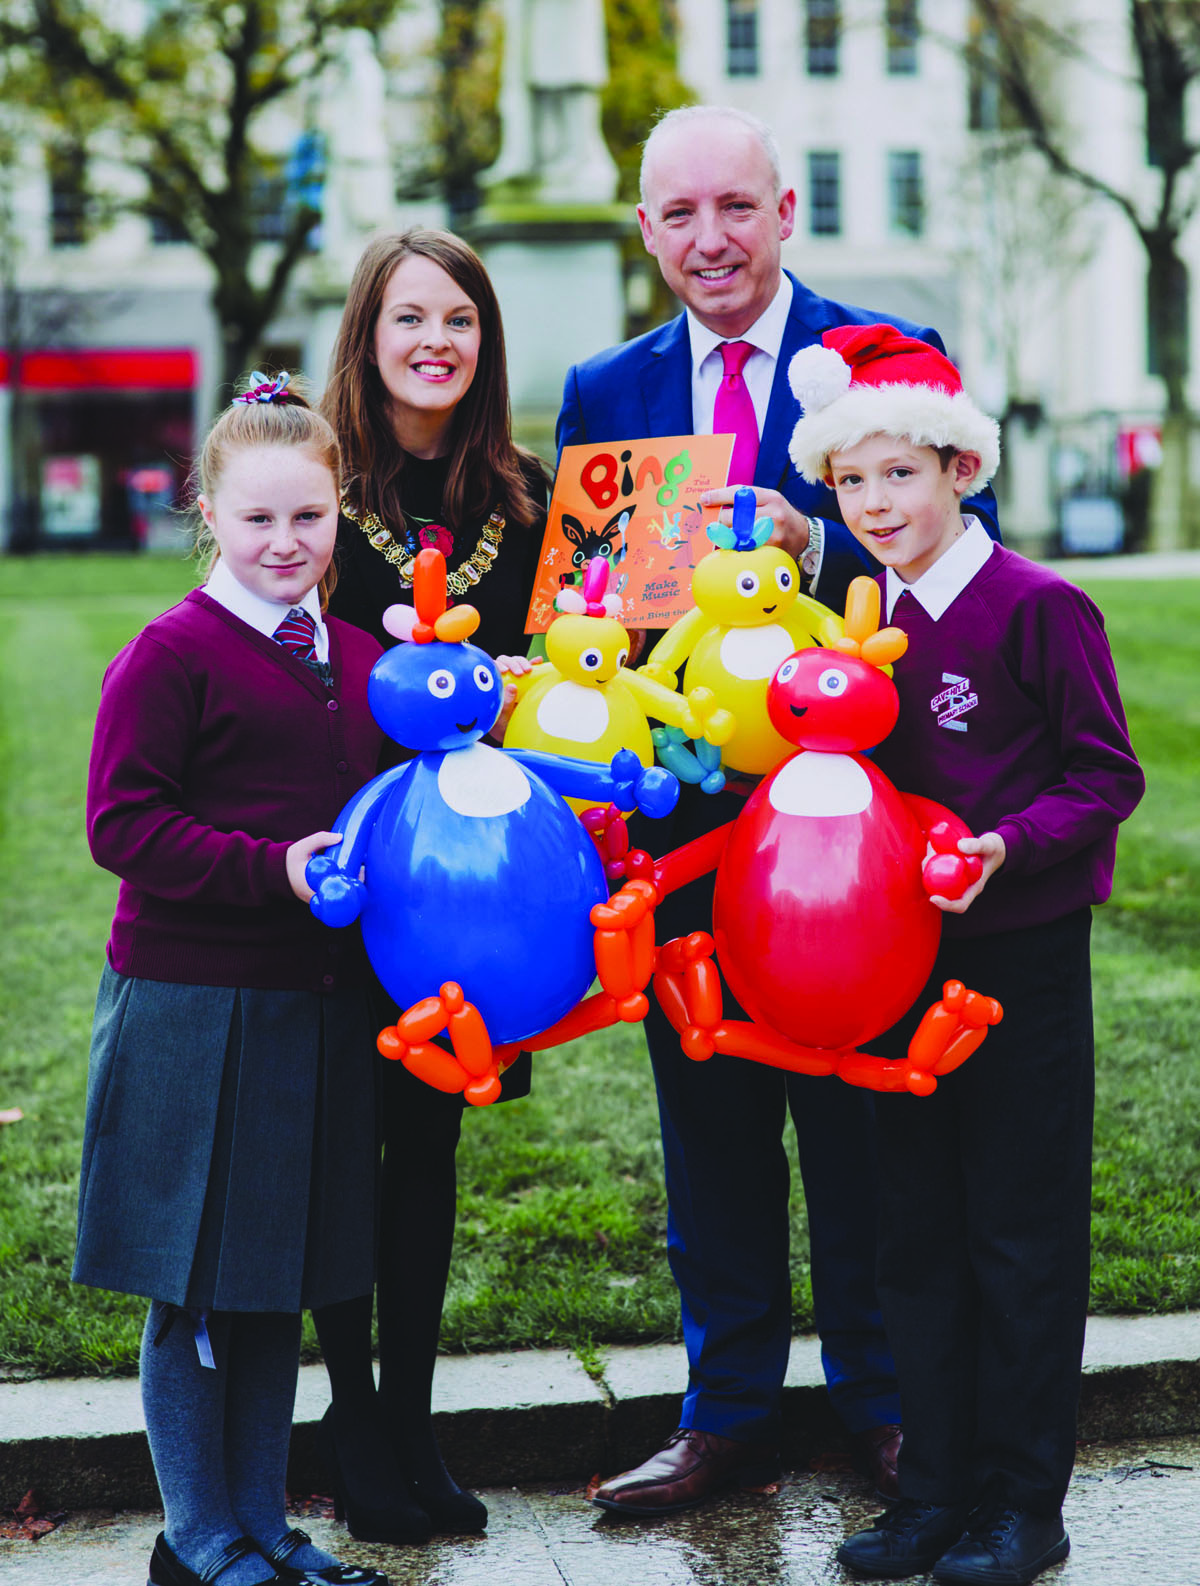 FESTIVE: The Lord Mayor of Belfast, Councillor Nuala McAllister, joins Cavehill Primary School pupils Anna Adams and Finn Bryan and Principal Stephen Orr in looking forward to the Christmas lights switch-on, which takes place on Saturday, November 18